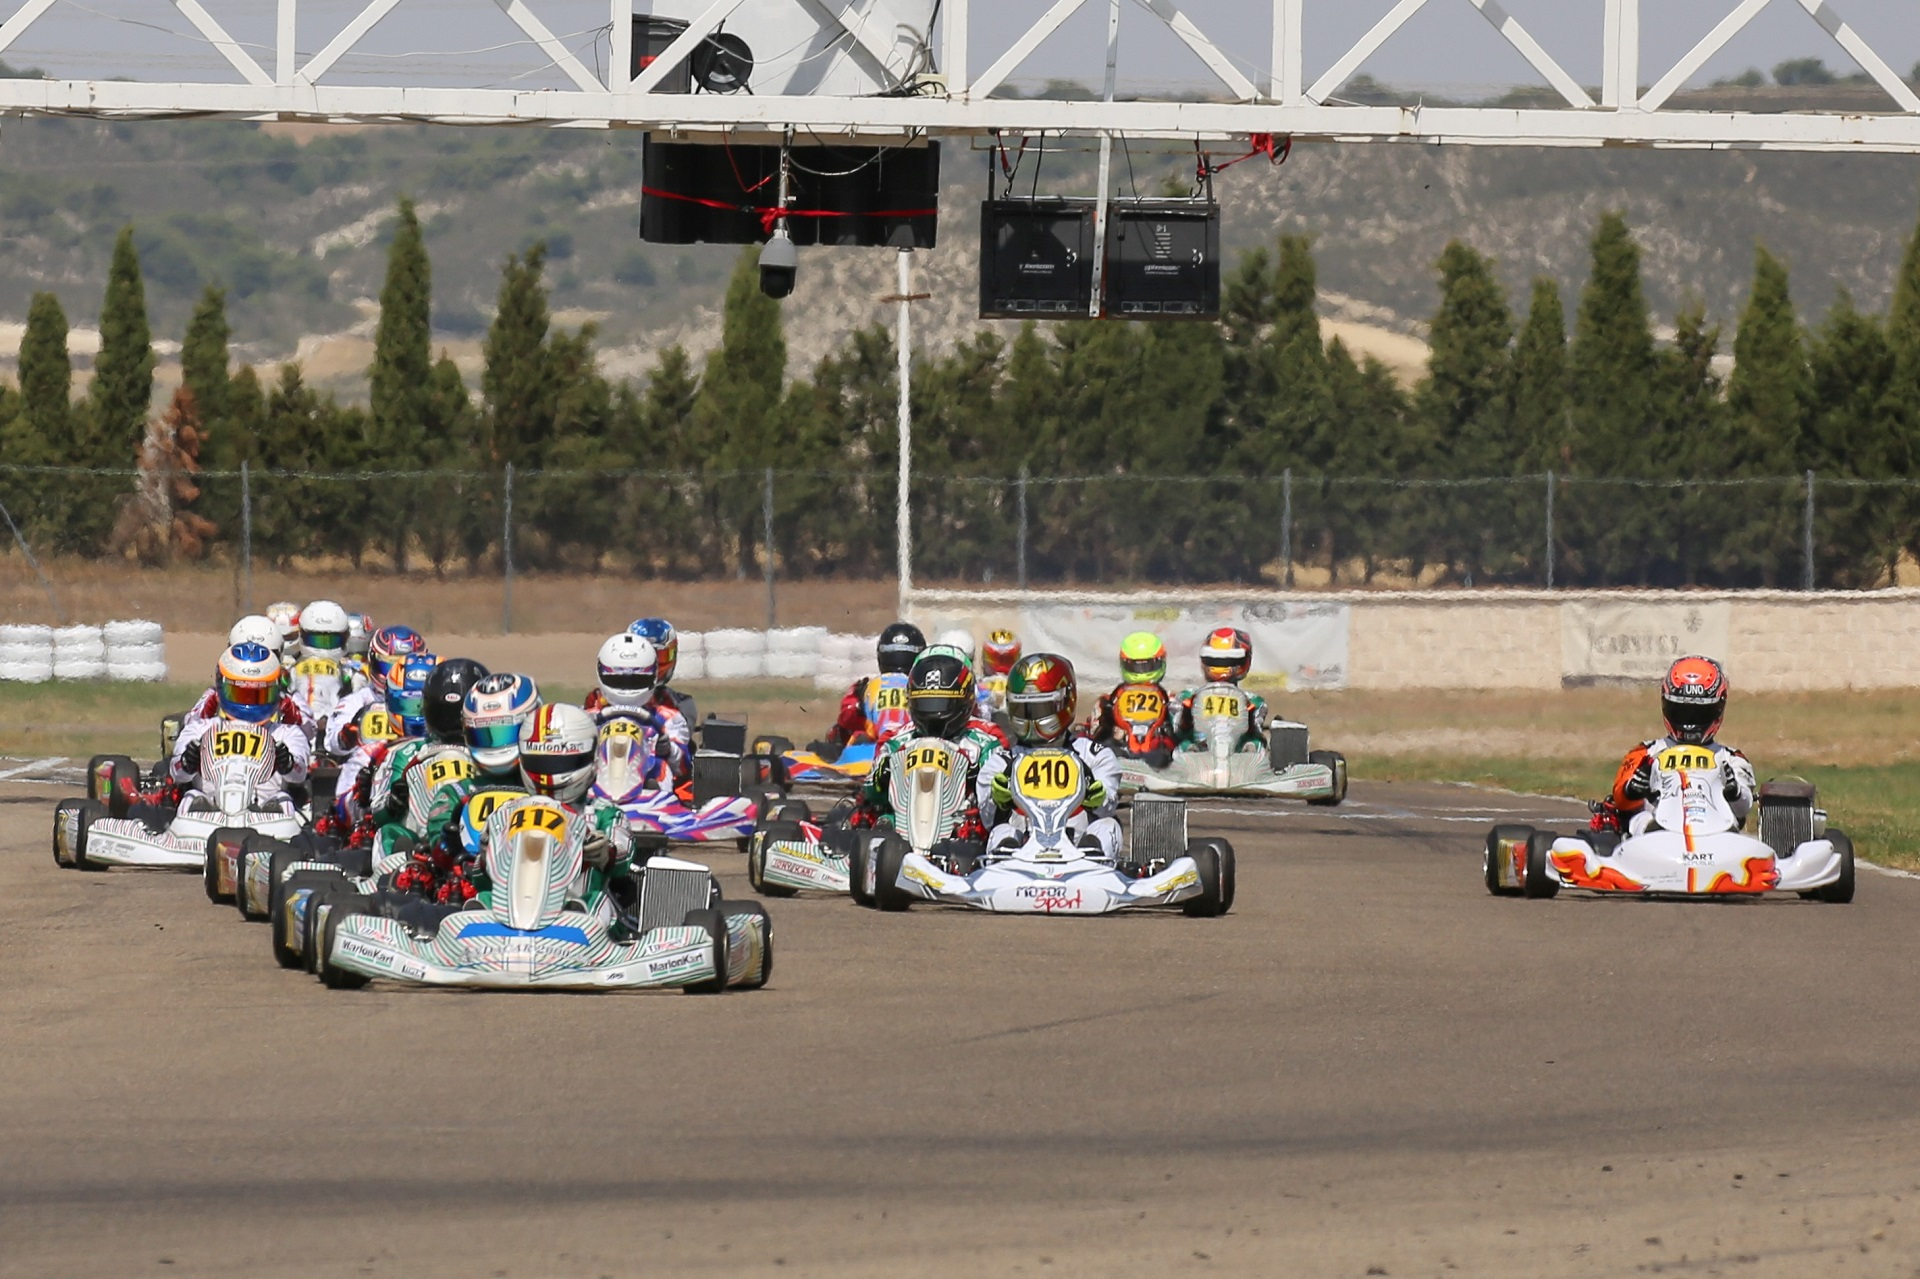 Rui Pereira 2.º classificado na Copa Rotax DD2 Master